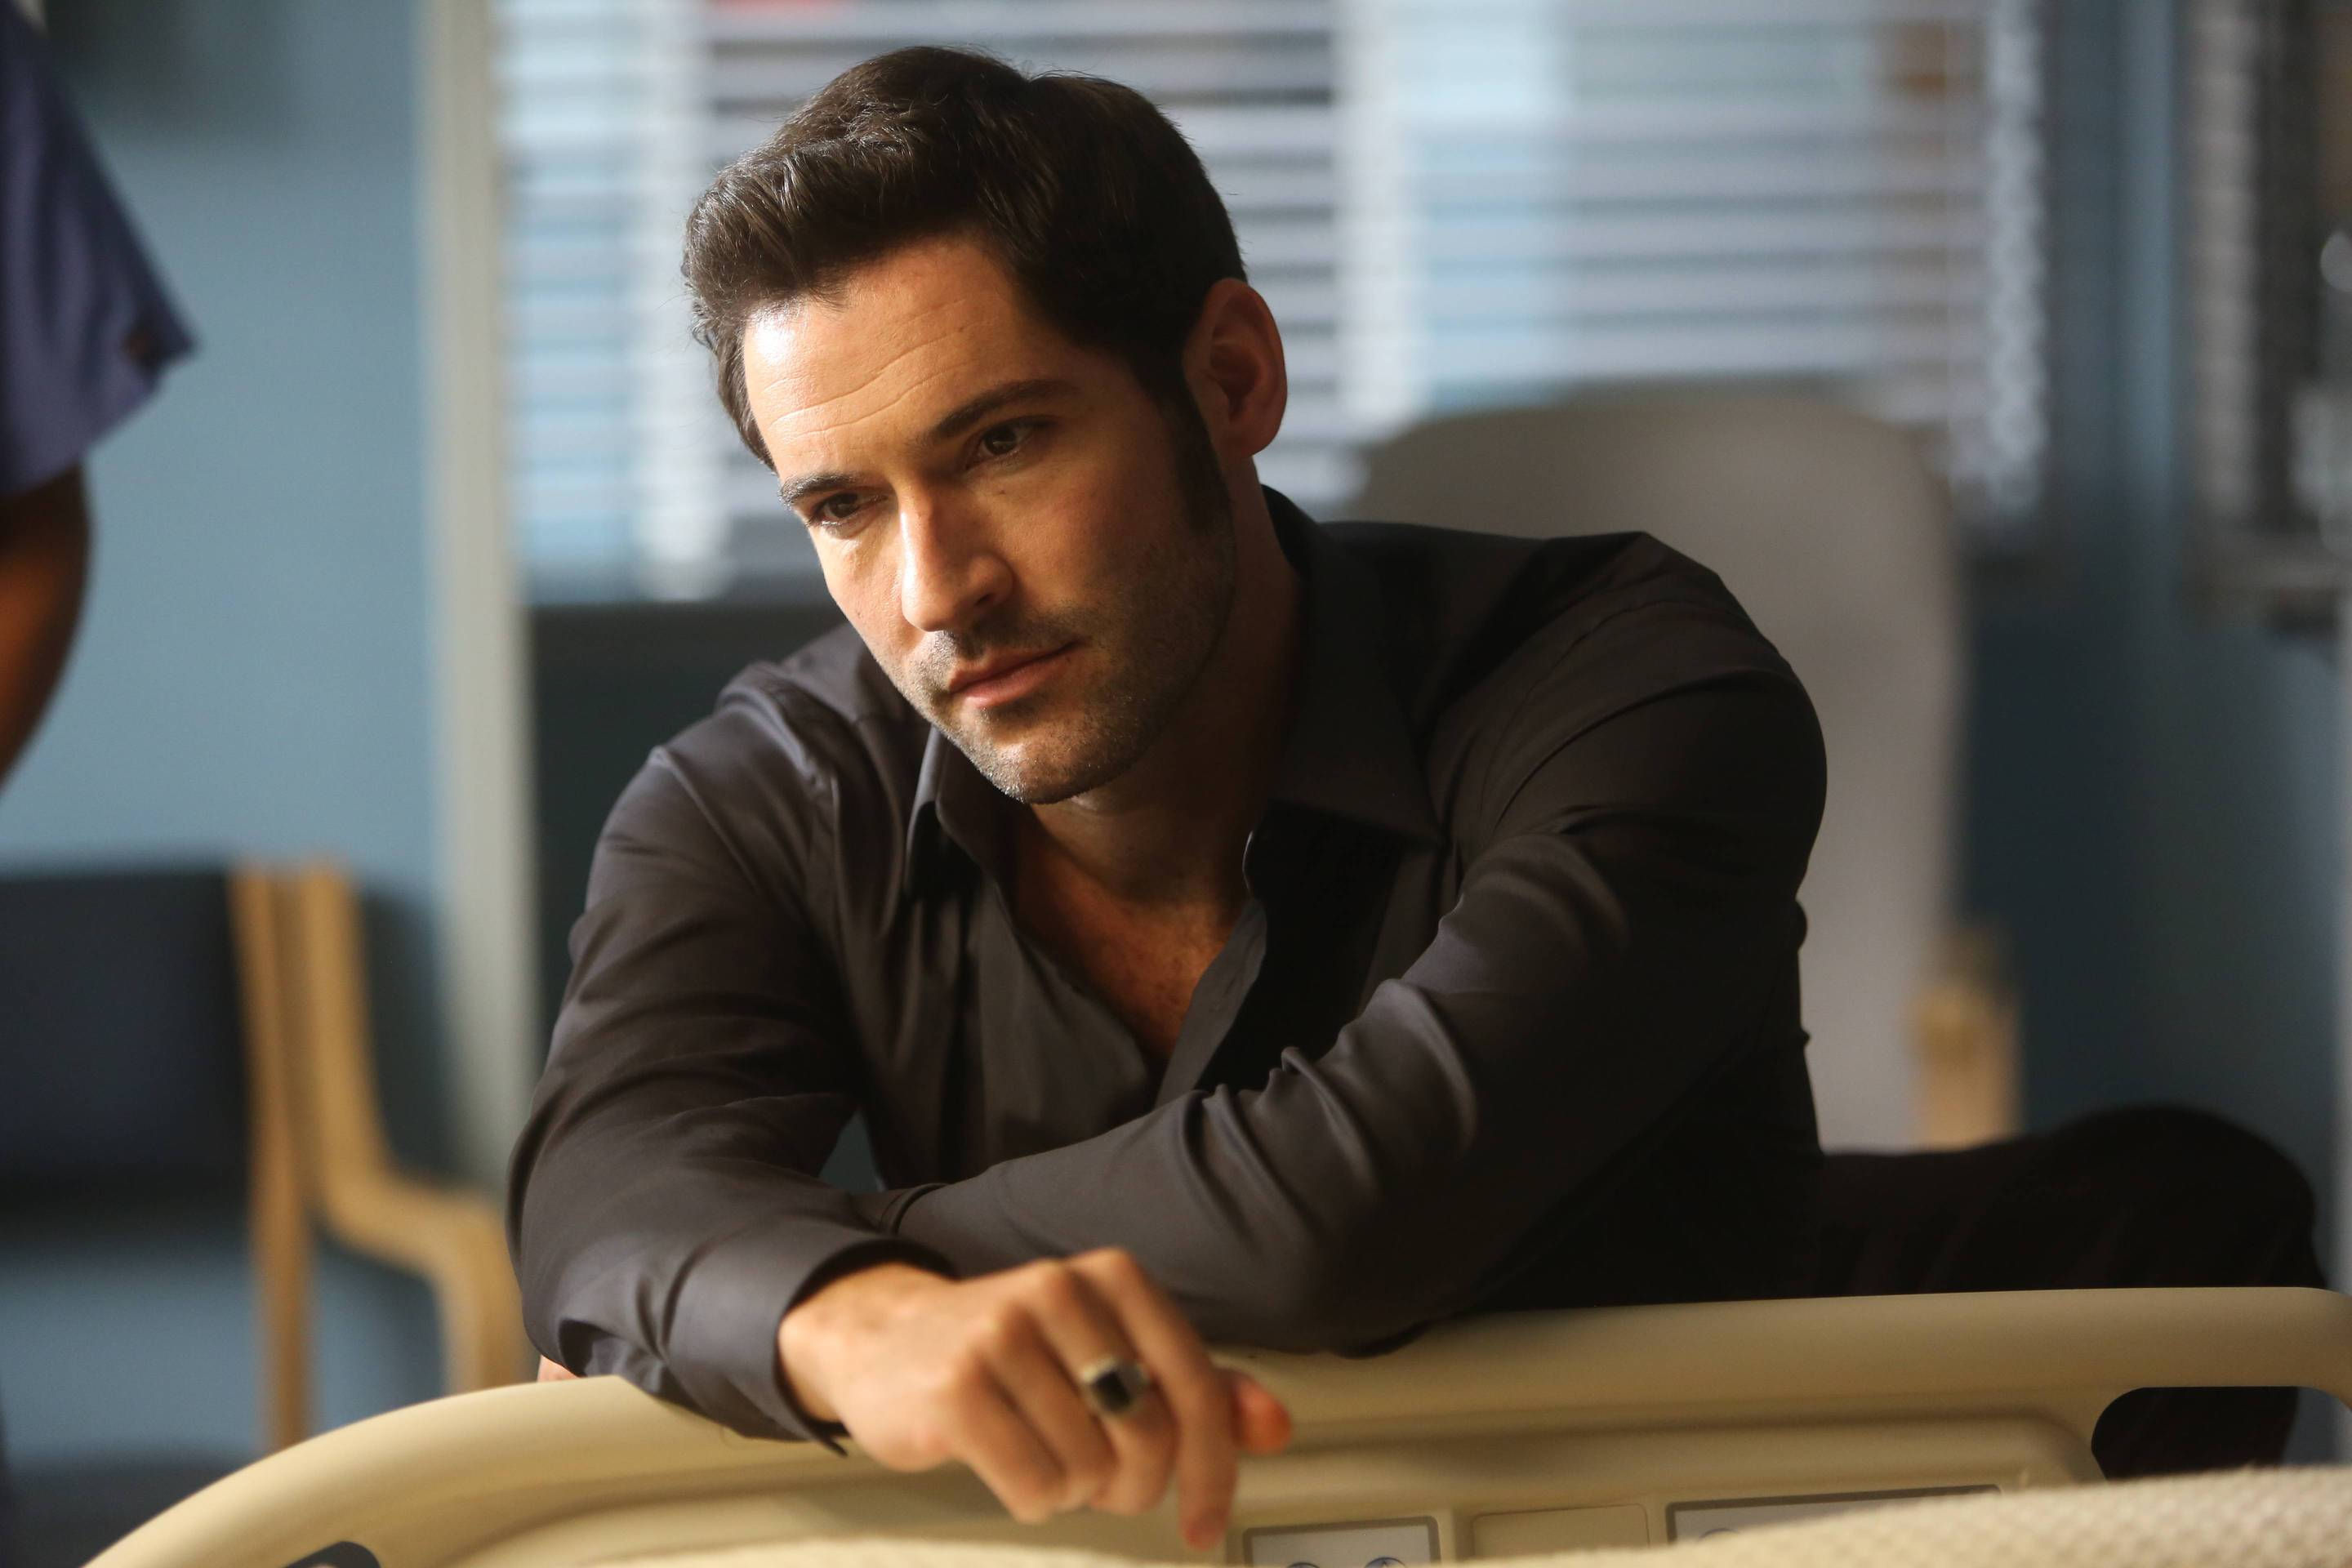 lucifer-morningstar---tom-ellis.jpg